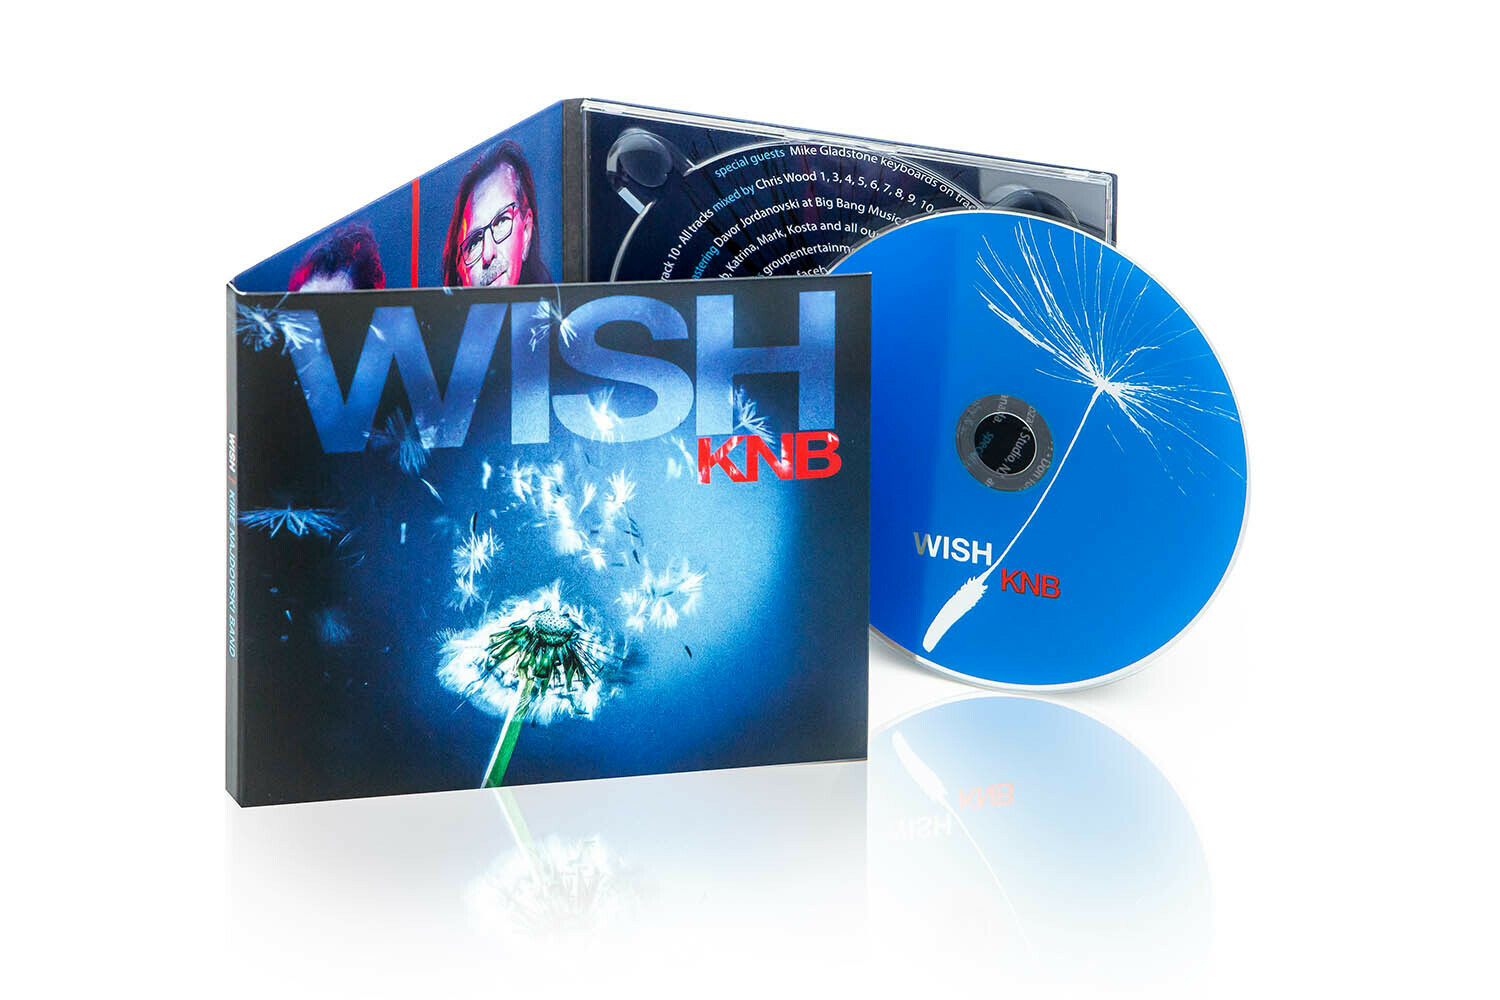 KNB's Second Album Wish. Hard copy CD.